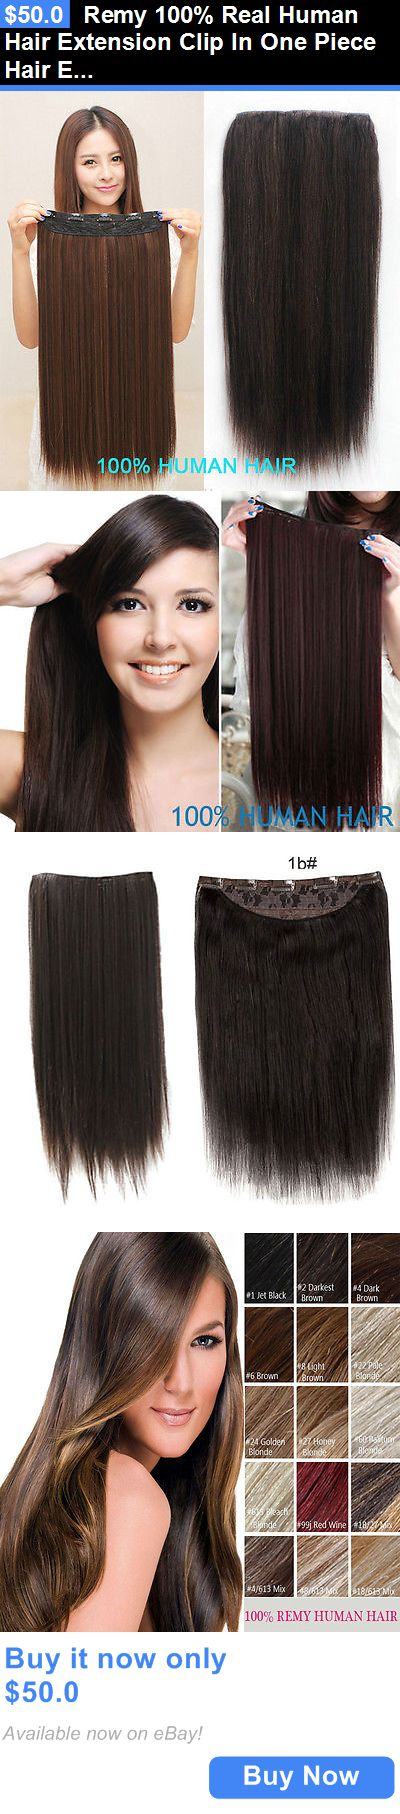 Hair Extensions Remy 100 Real Human Extension Clip In One Piece